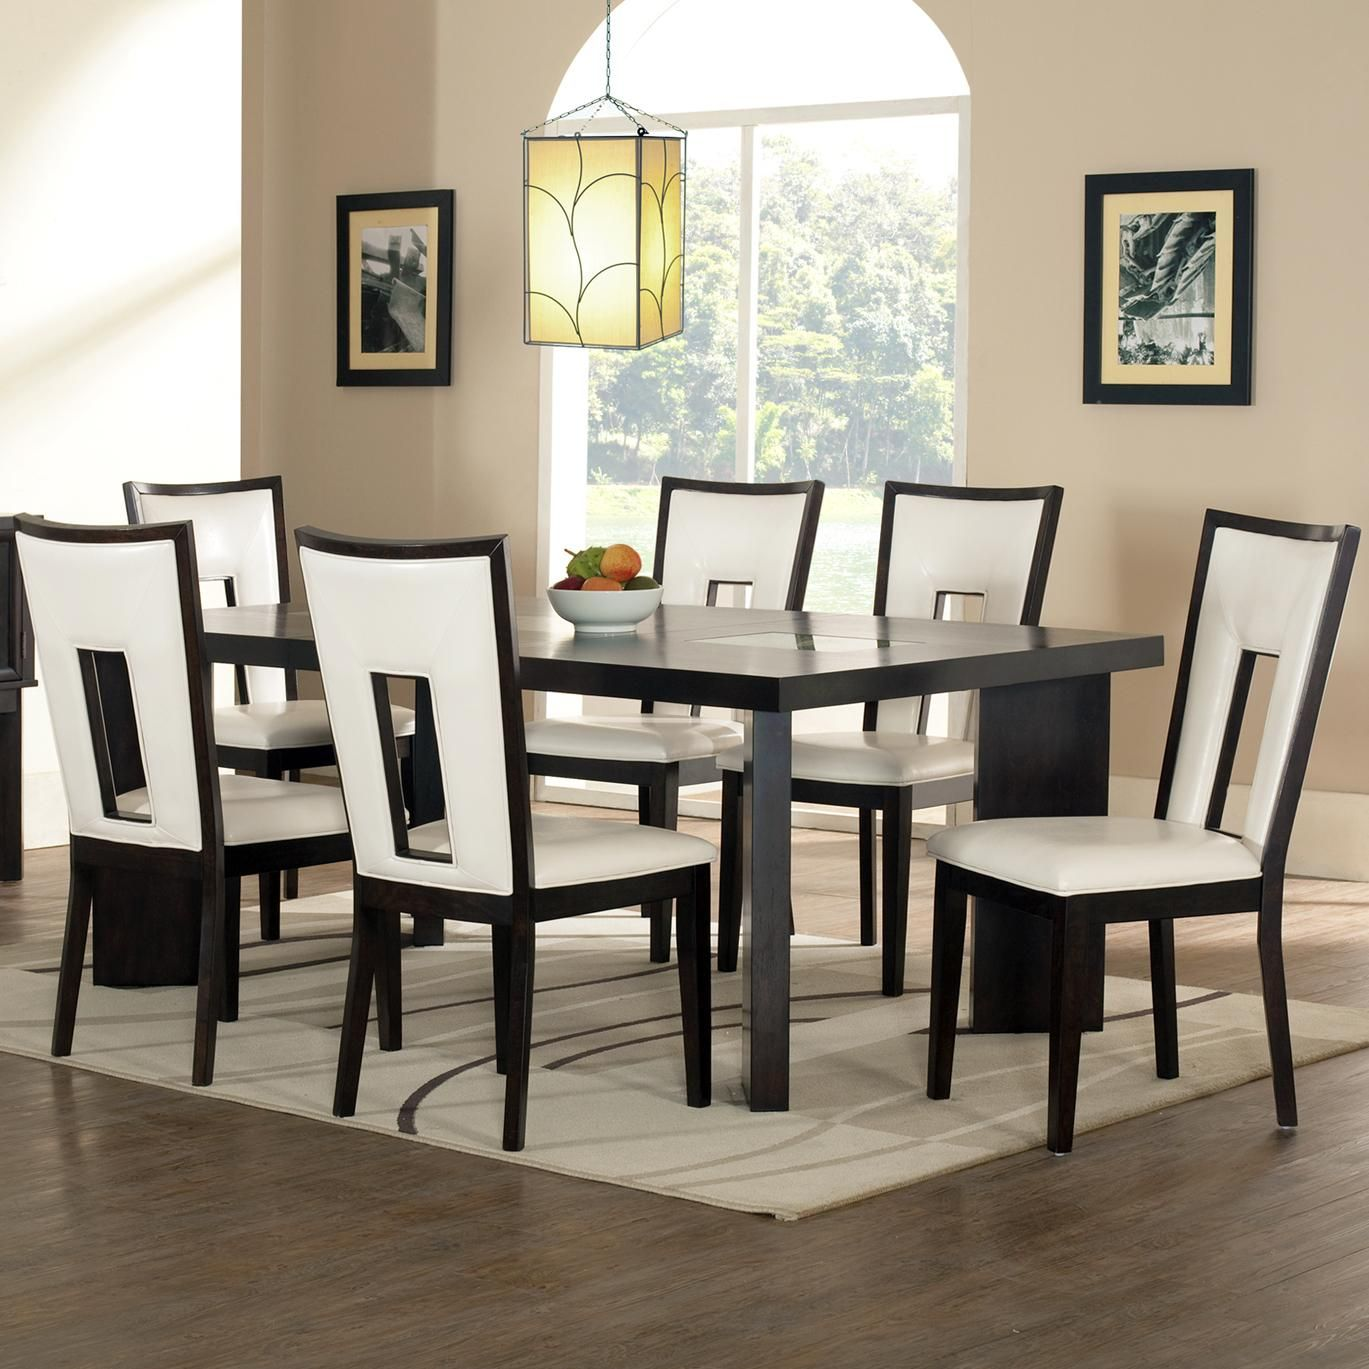 Cheap 7 Piece Dining Sets: Delano 7-Piece Dining Table And Chair Set By Steve Silver